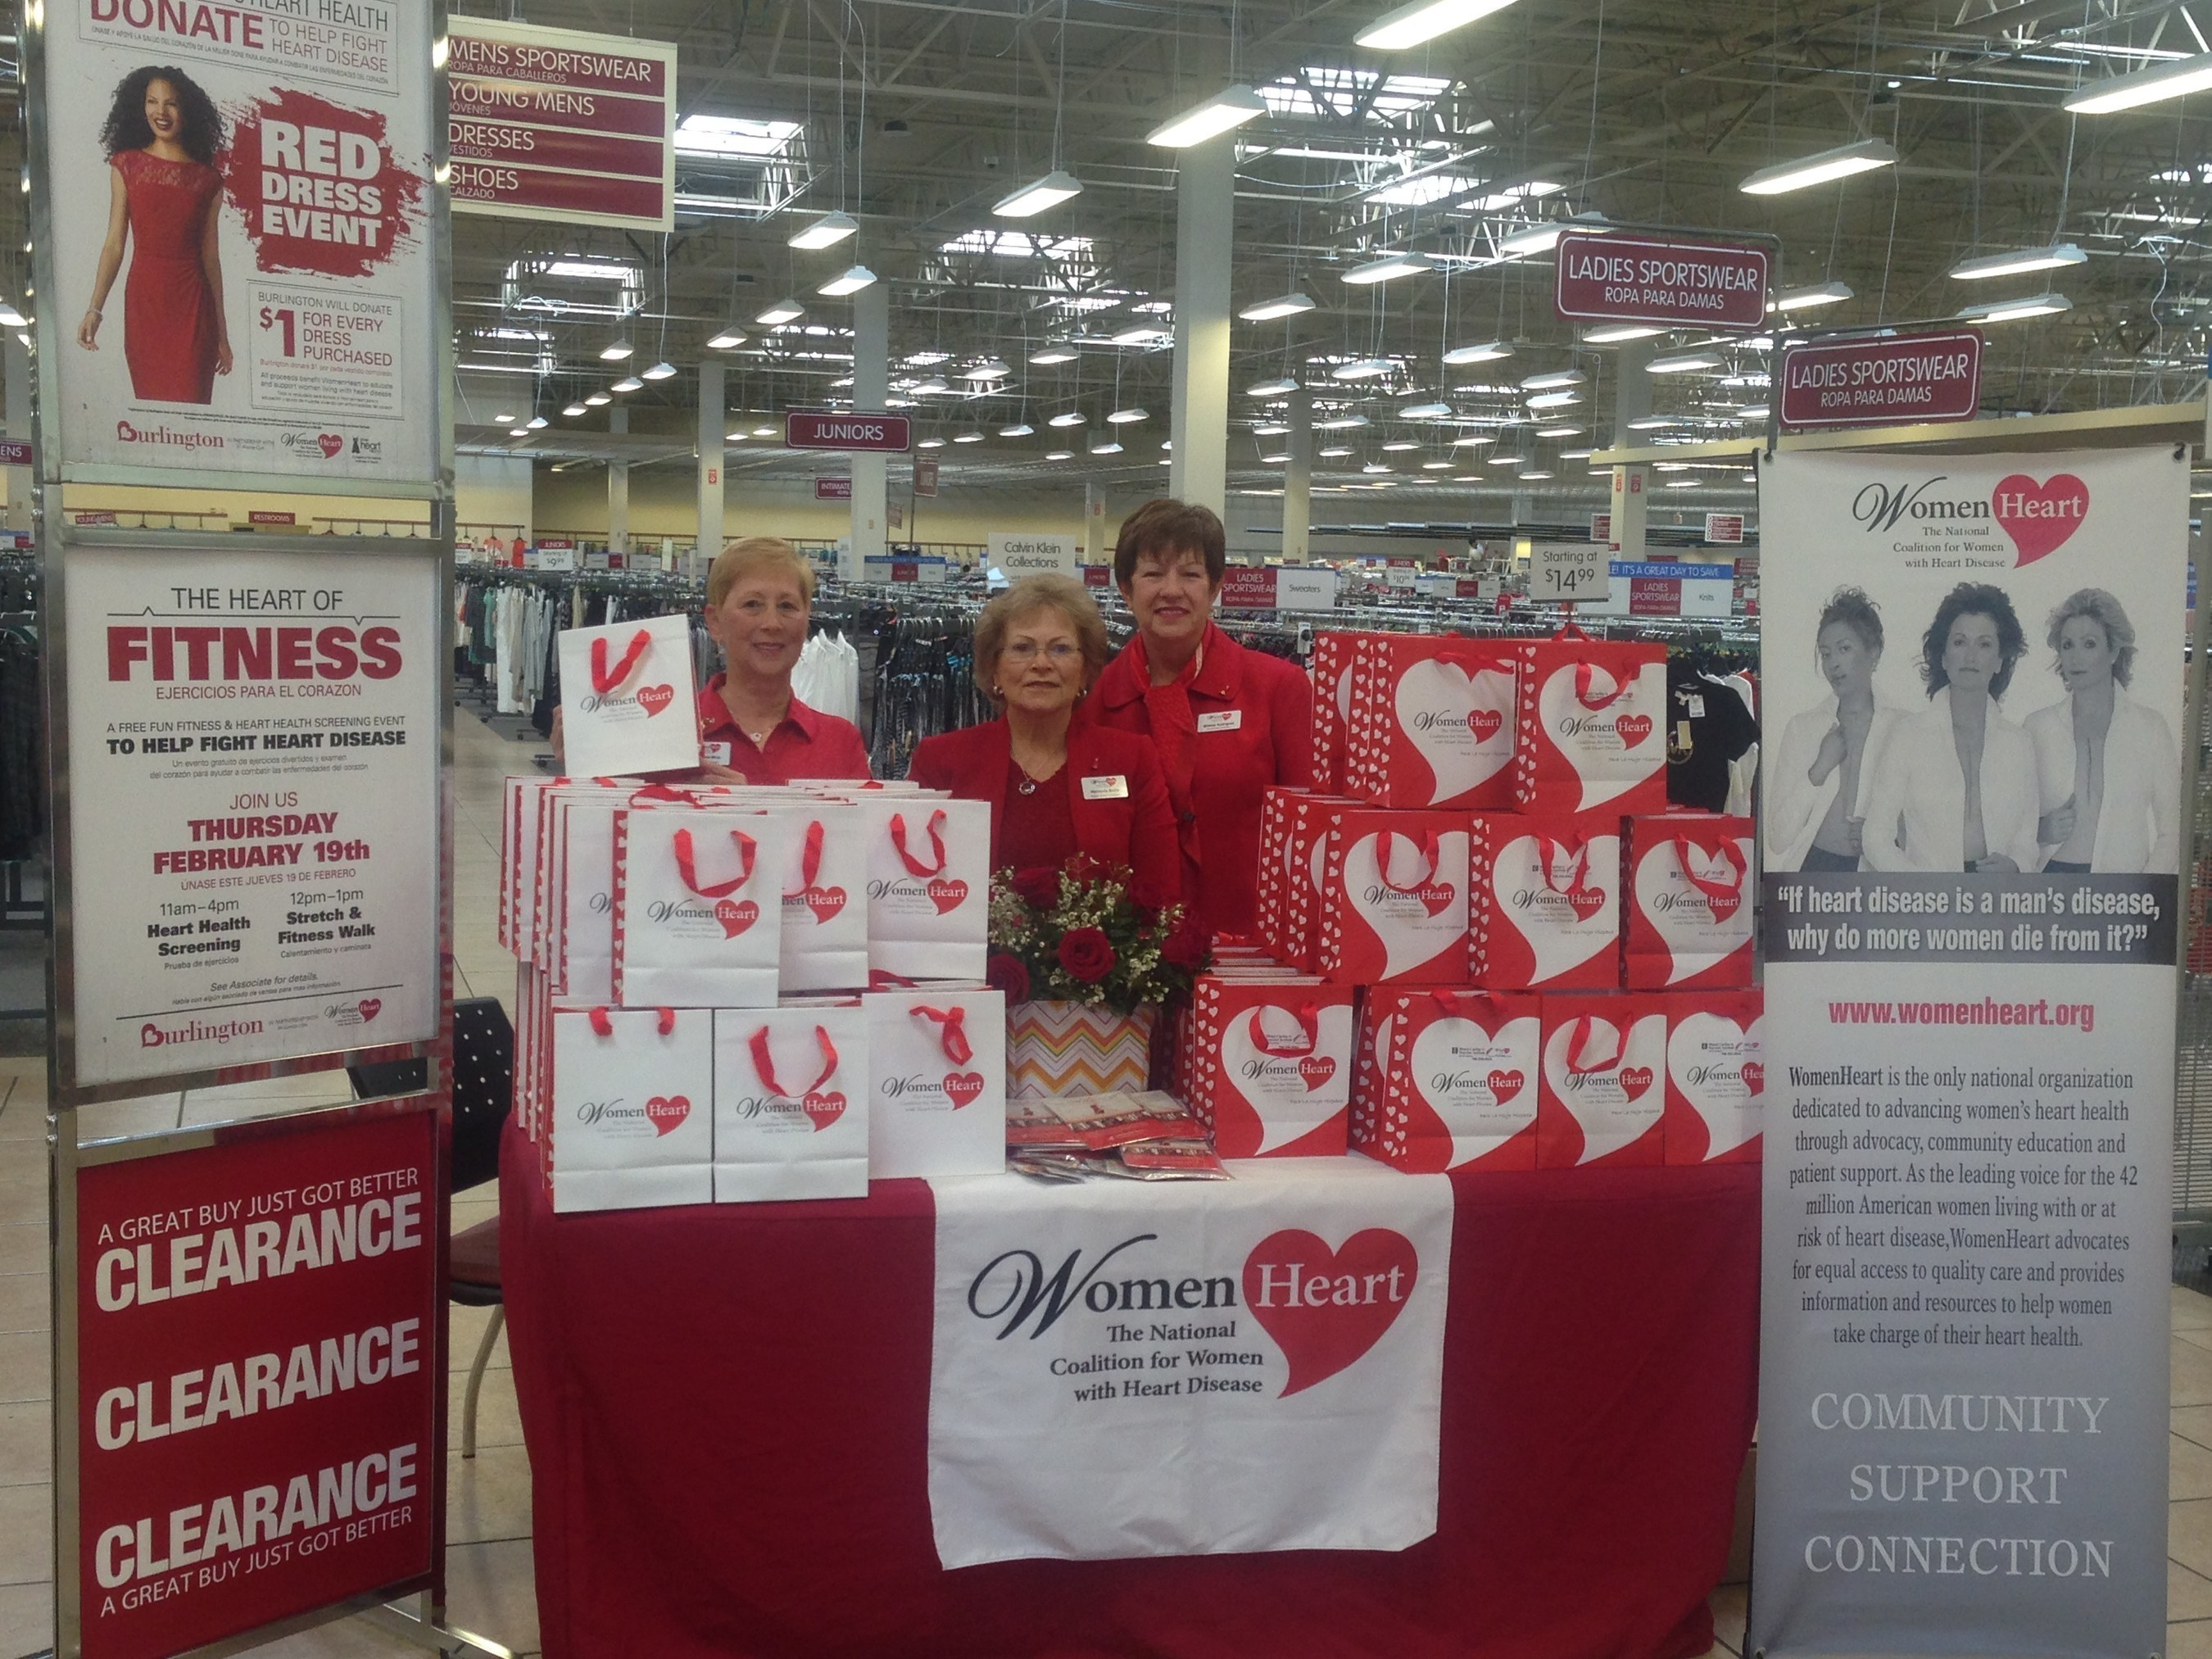 The Heart of Fitness Tour at Burlington in Tampa, FL